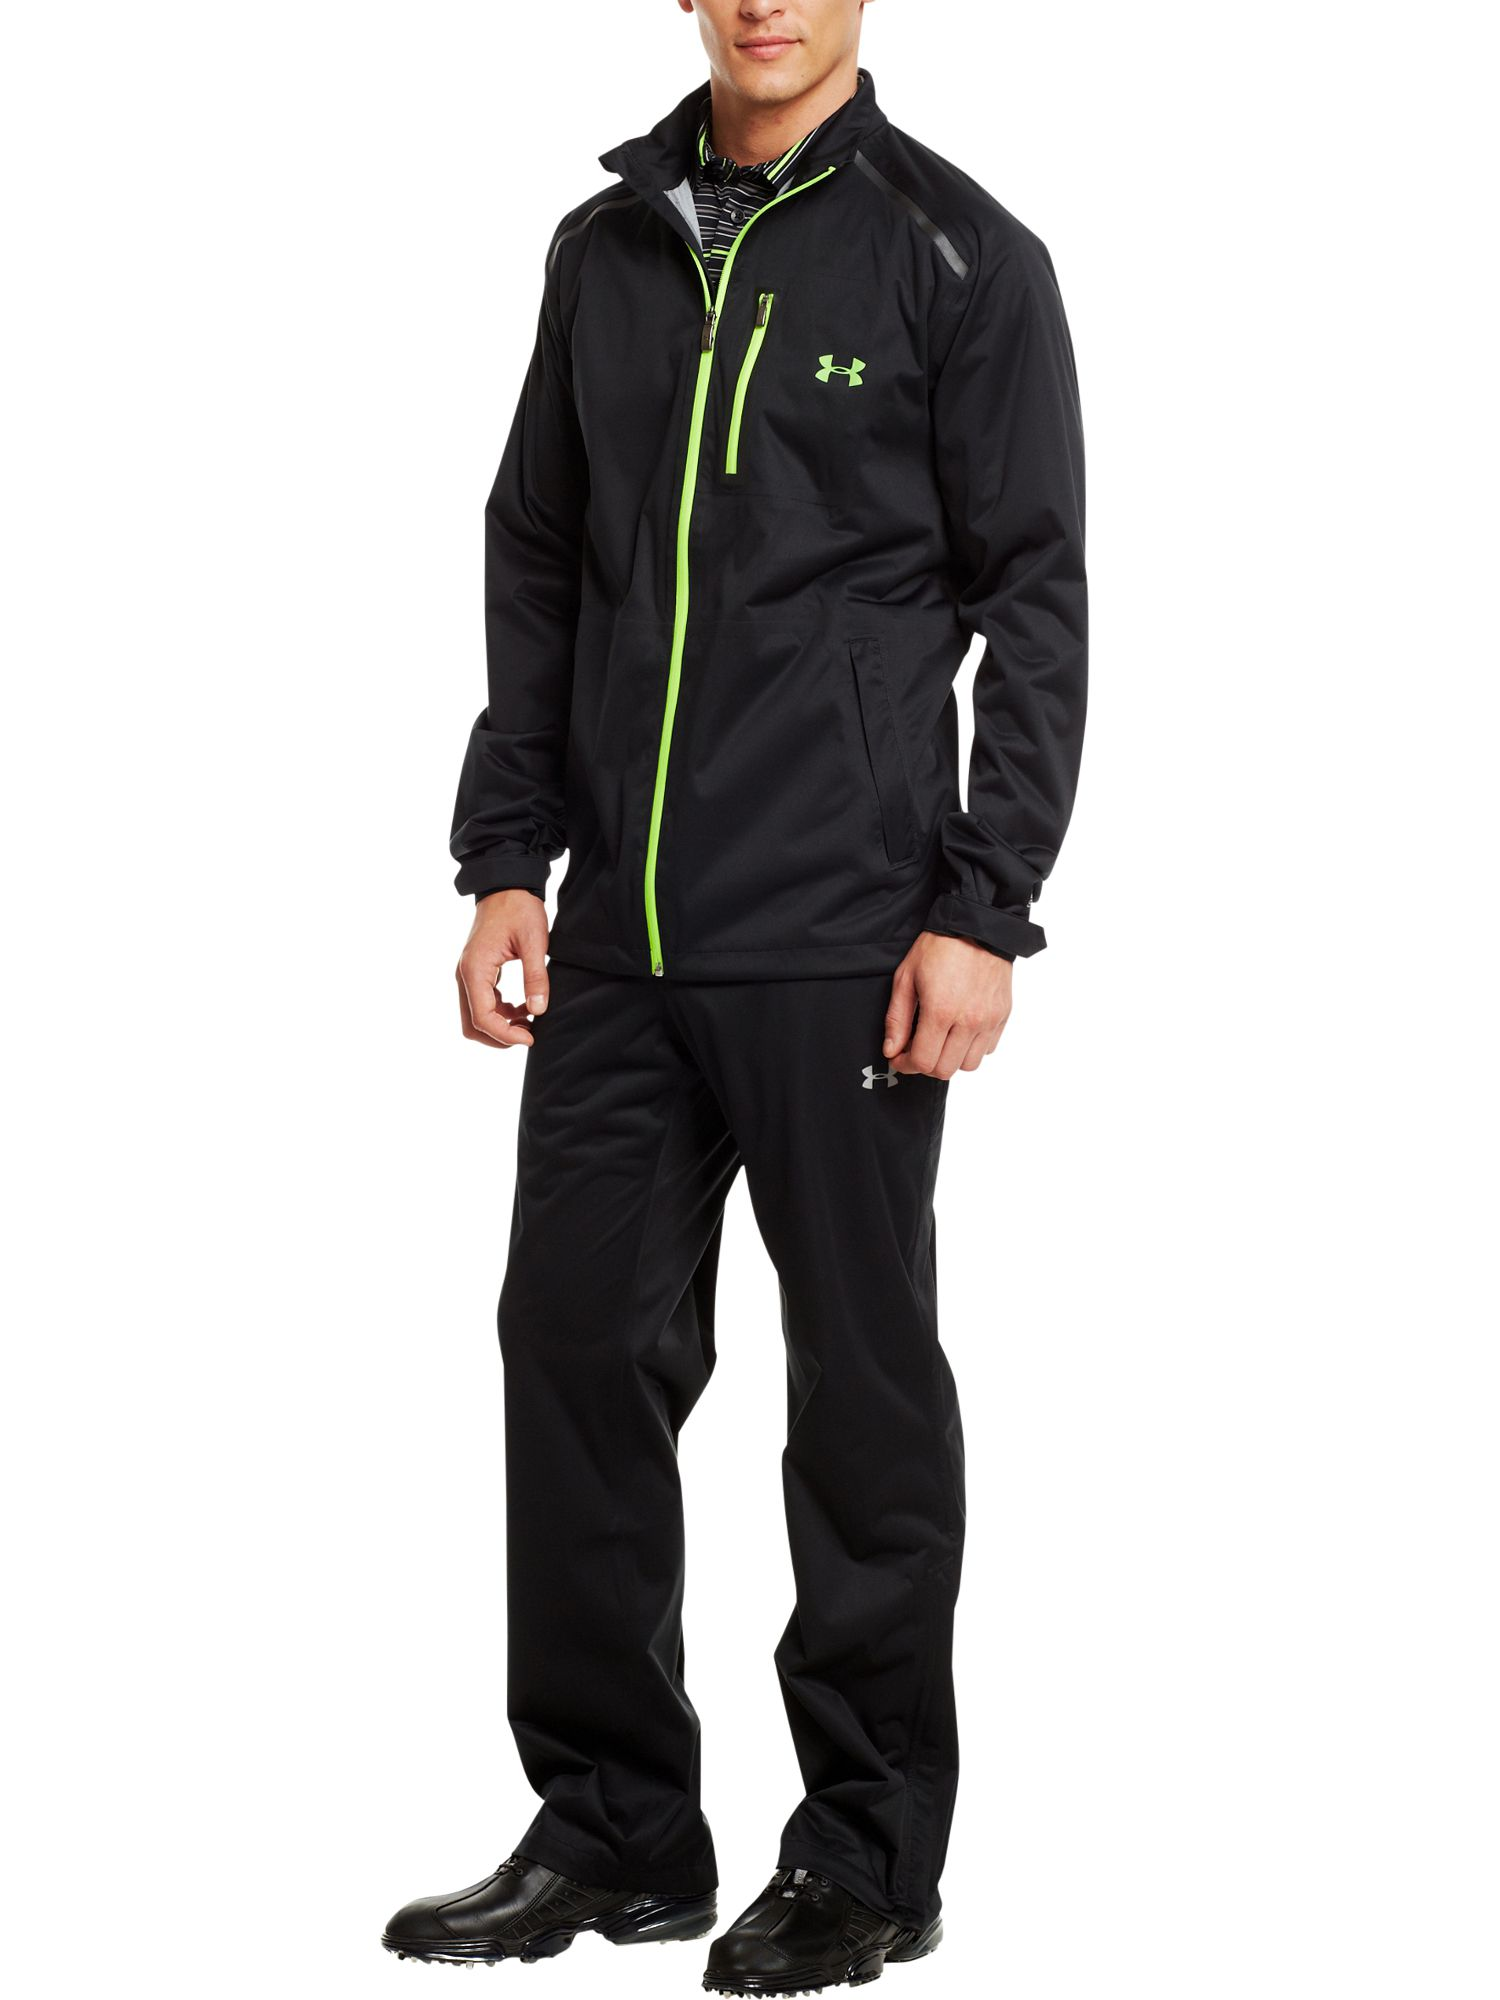 Armourstorm waterproof jacket